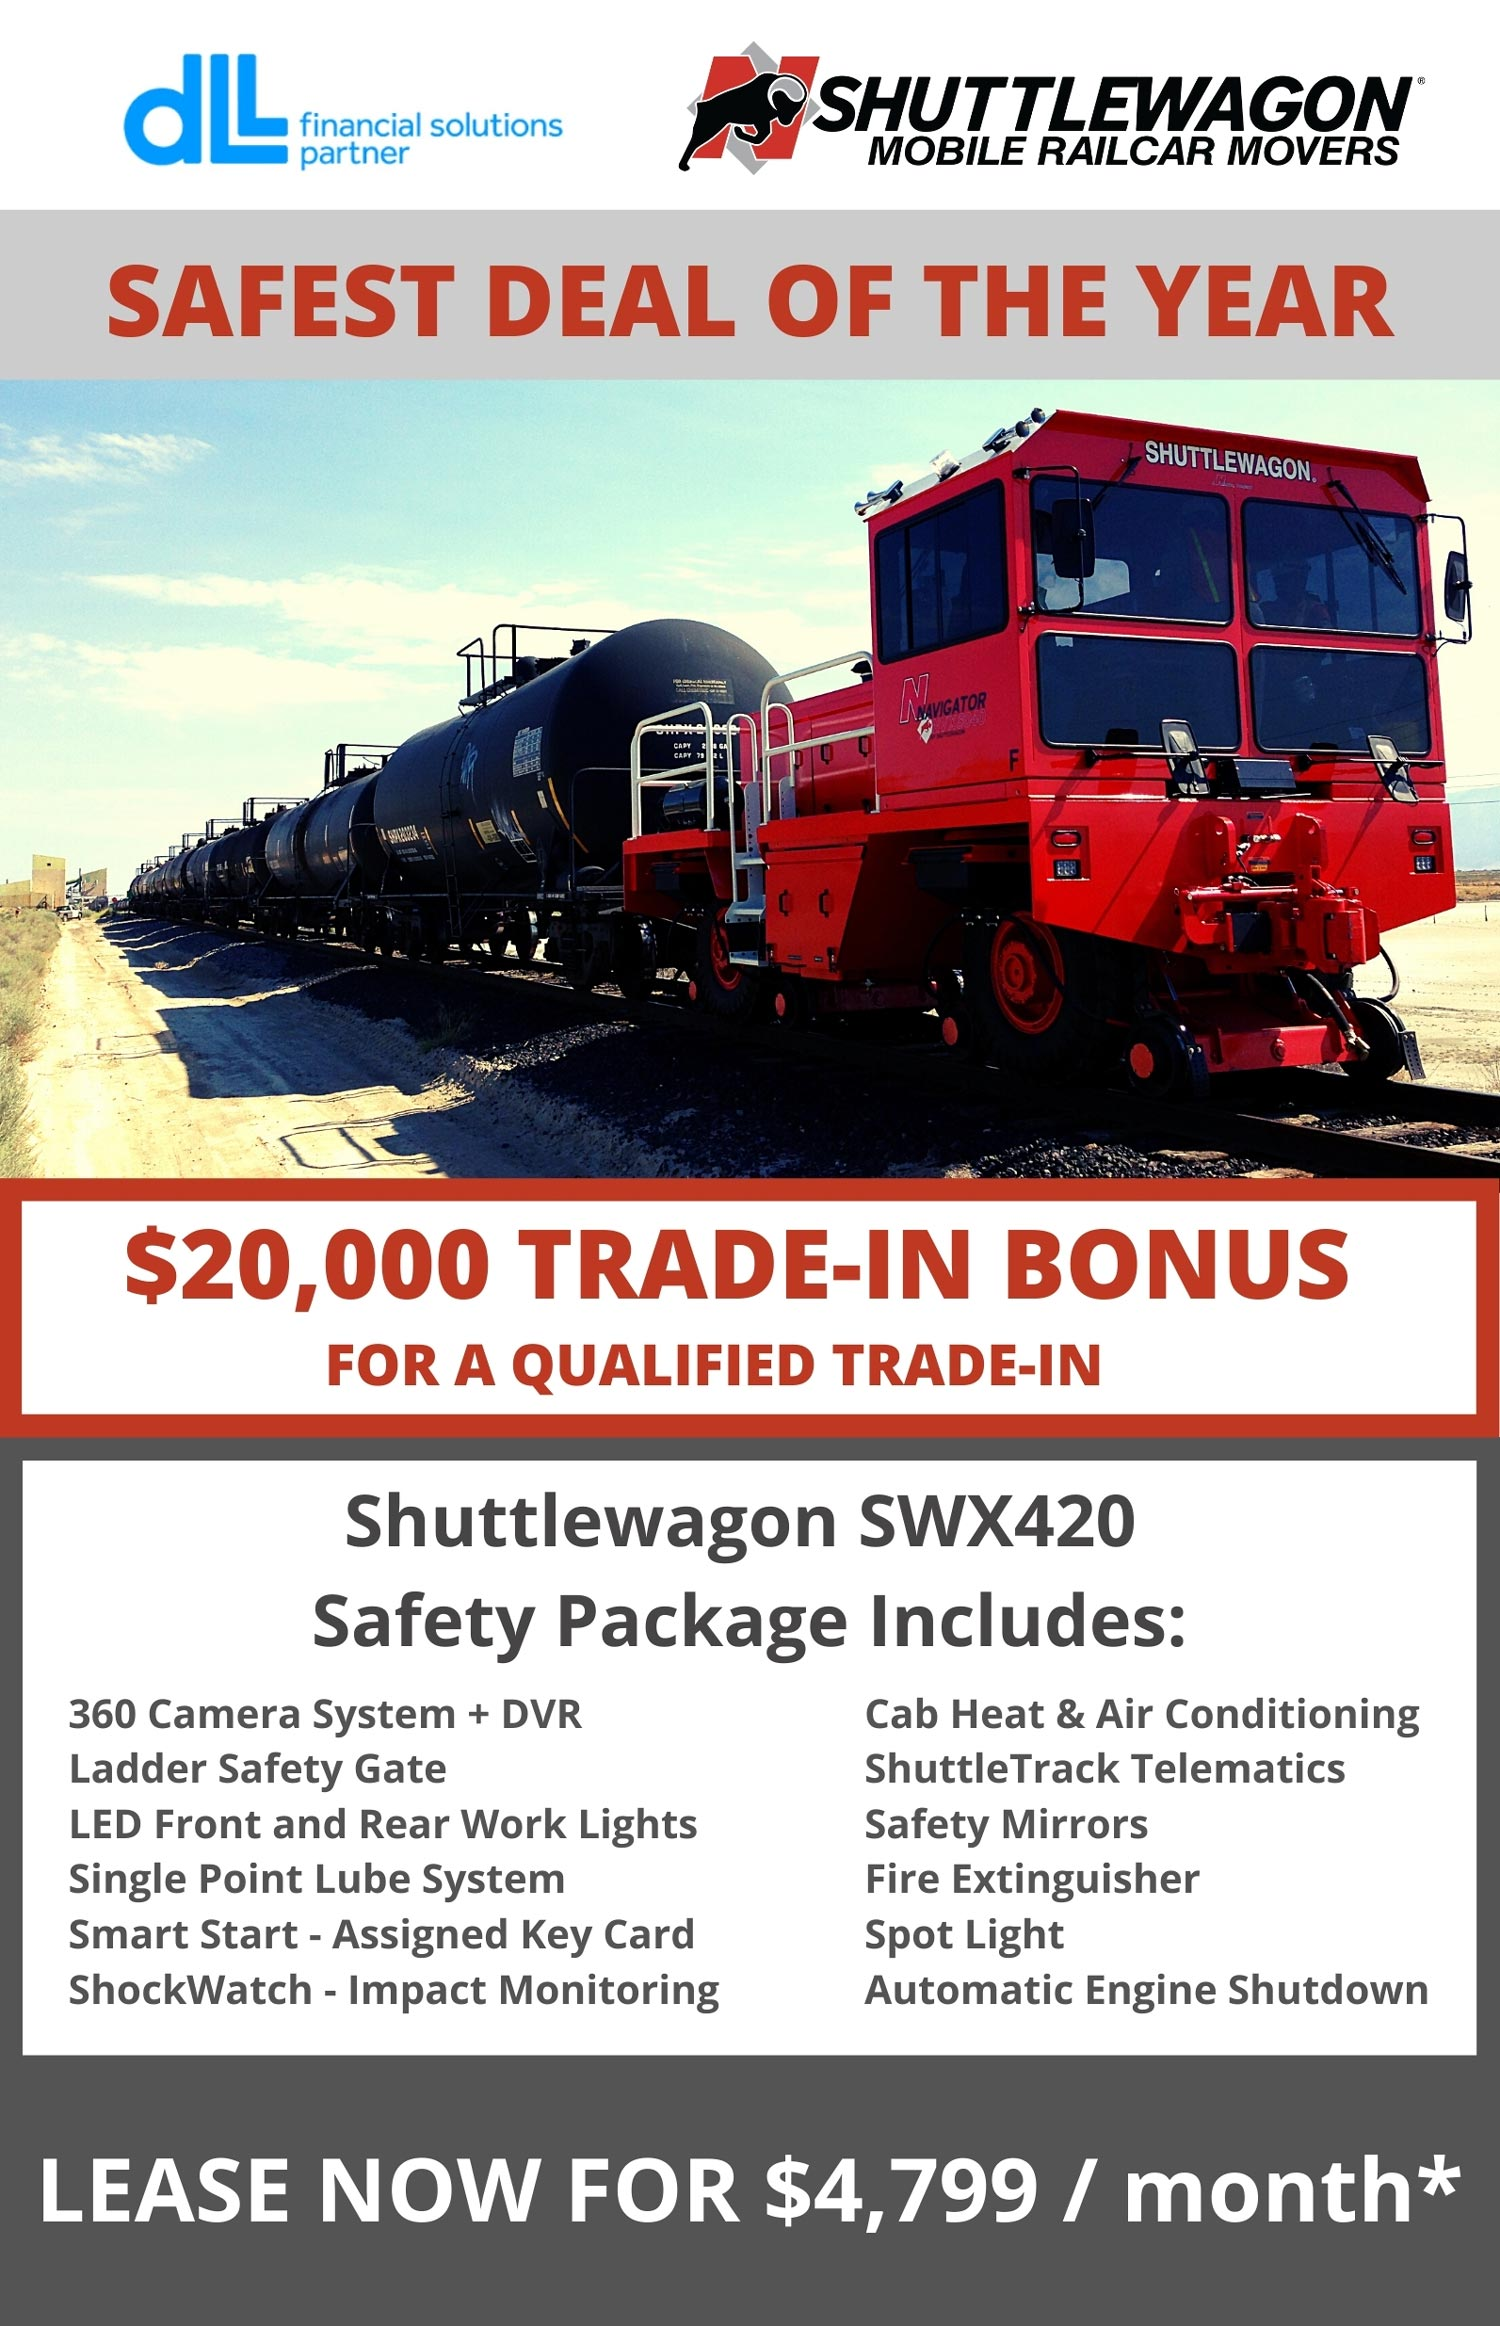 Shuttlewagon Deal Days - Safest Deal of the Year